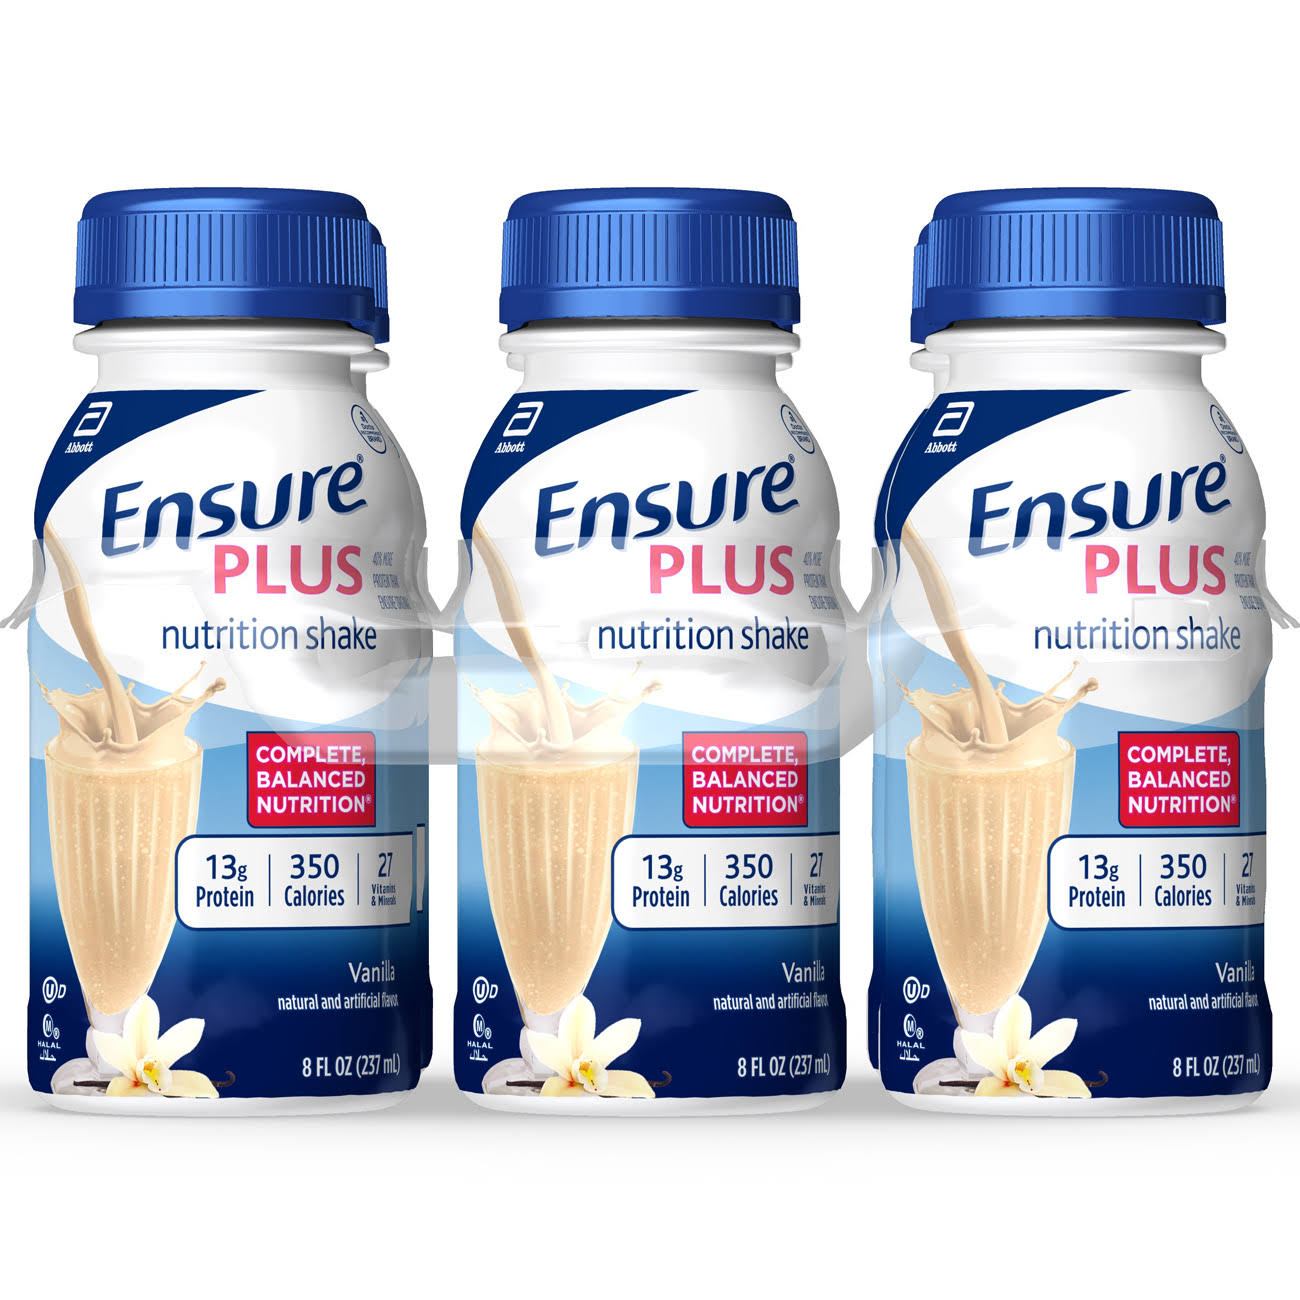 Abbott Ensure Plus Vanilla Nutrition Shake - 6 x 8 oz Pack